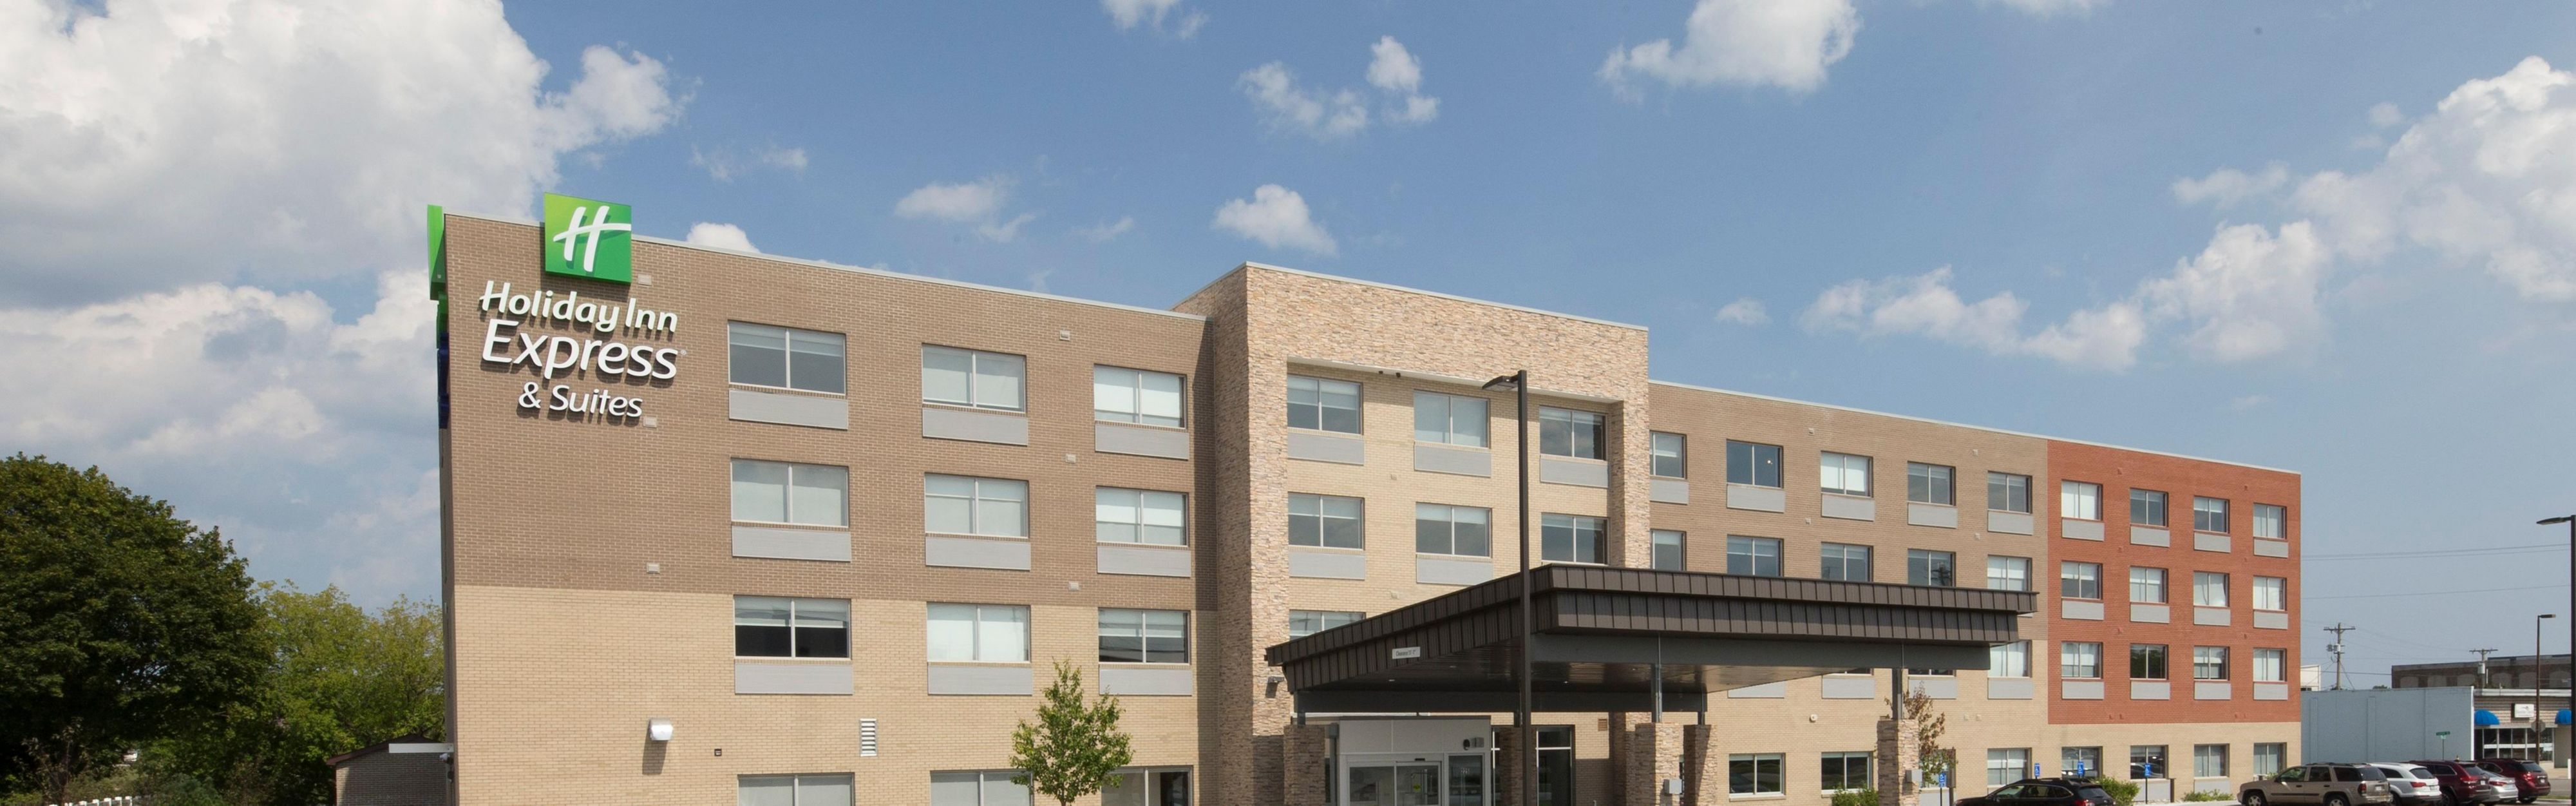 Holiday Inn Express & Suites Alpena - Downtown image 0